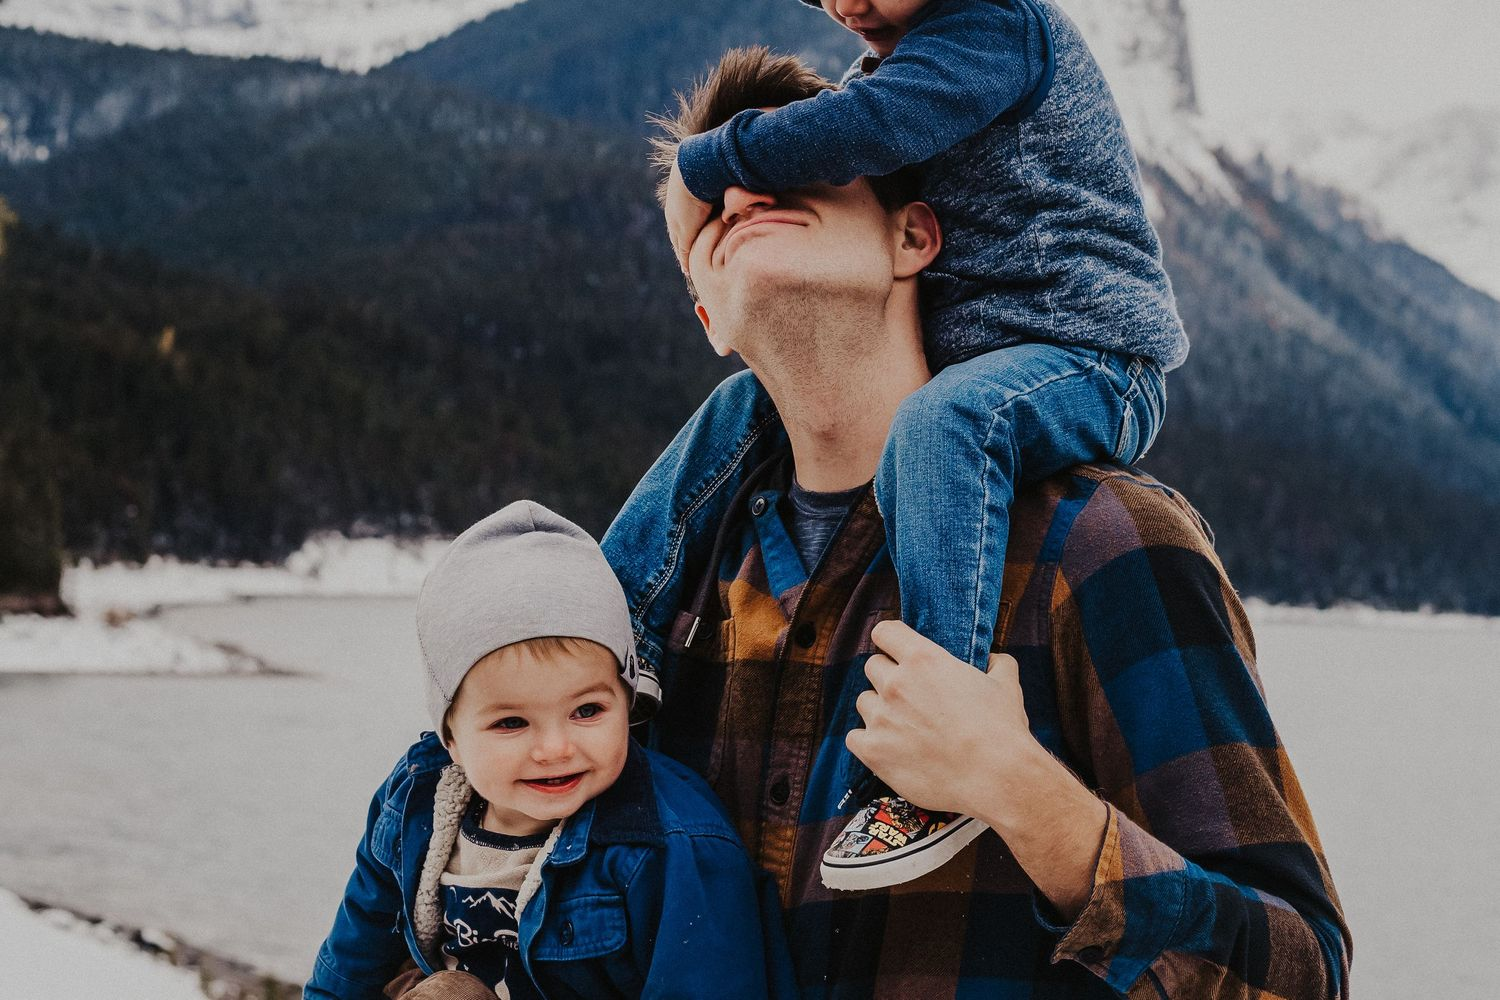 son on dad's shoulders covers his dad's eyes